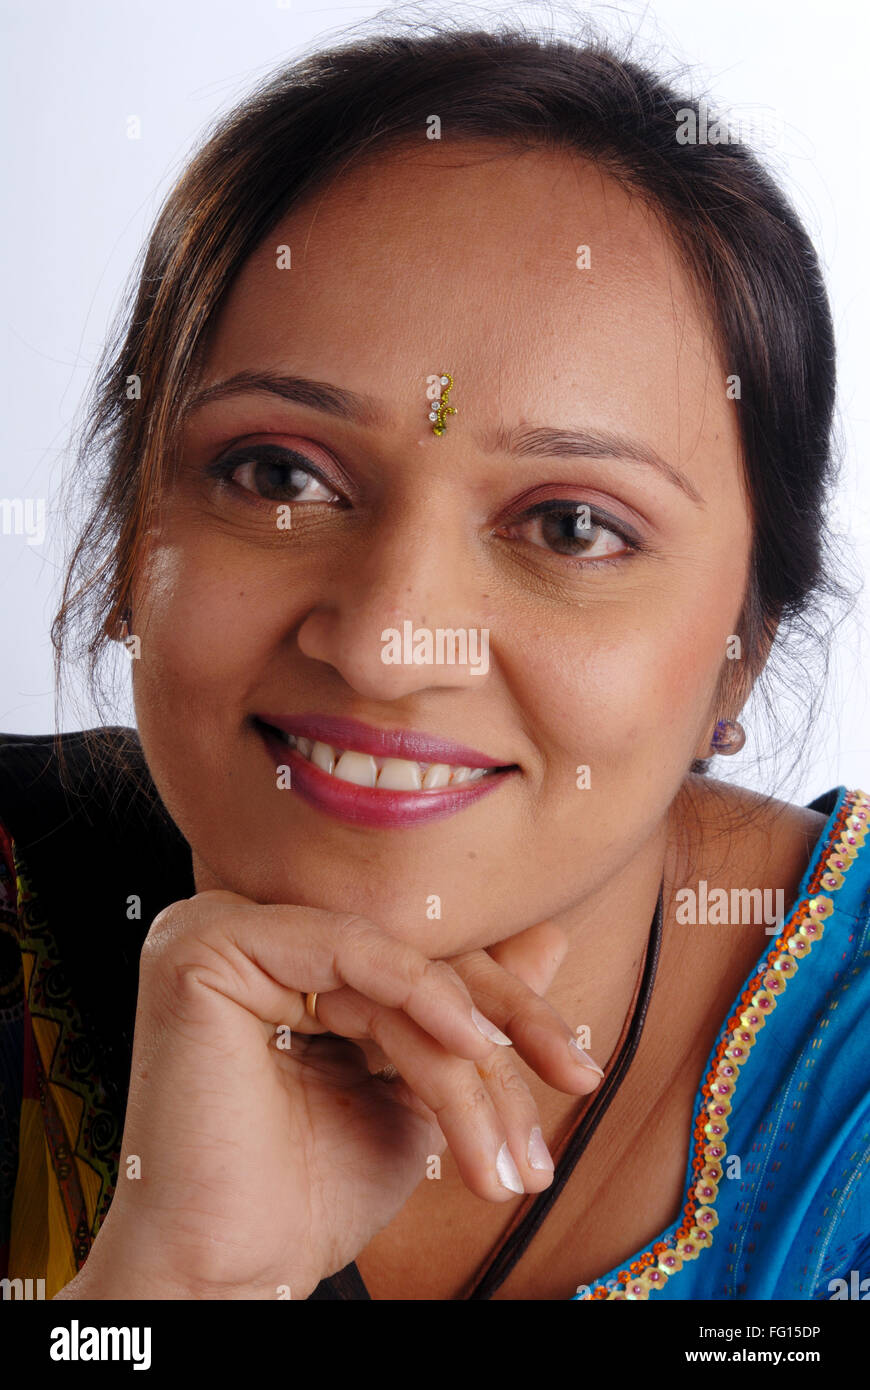 Close Ups Of South Asian Indian Woman Smiling Face Mr 364